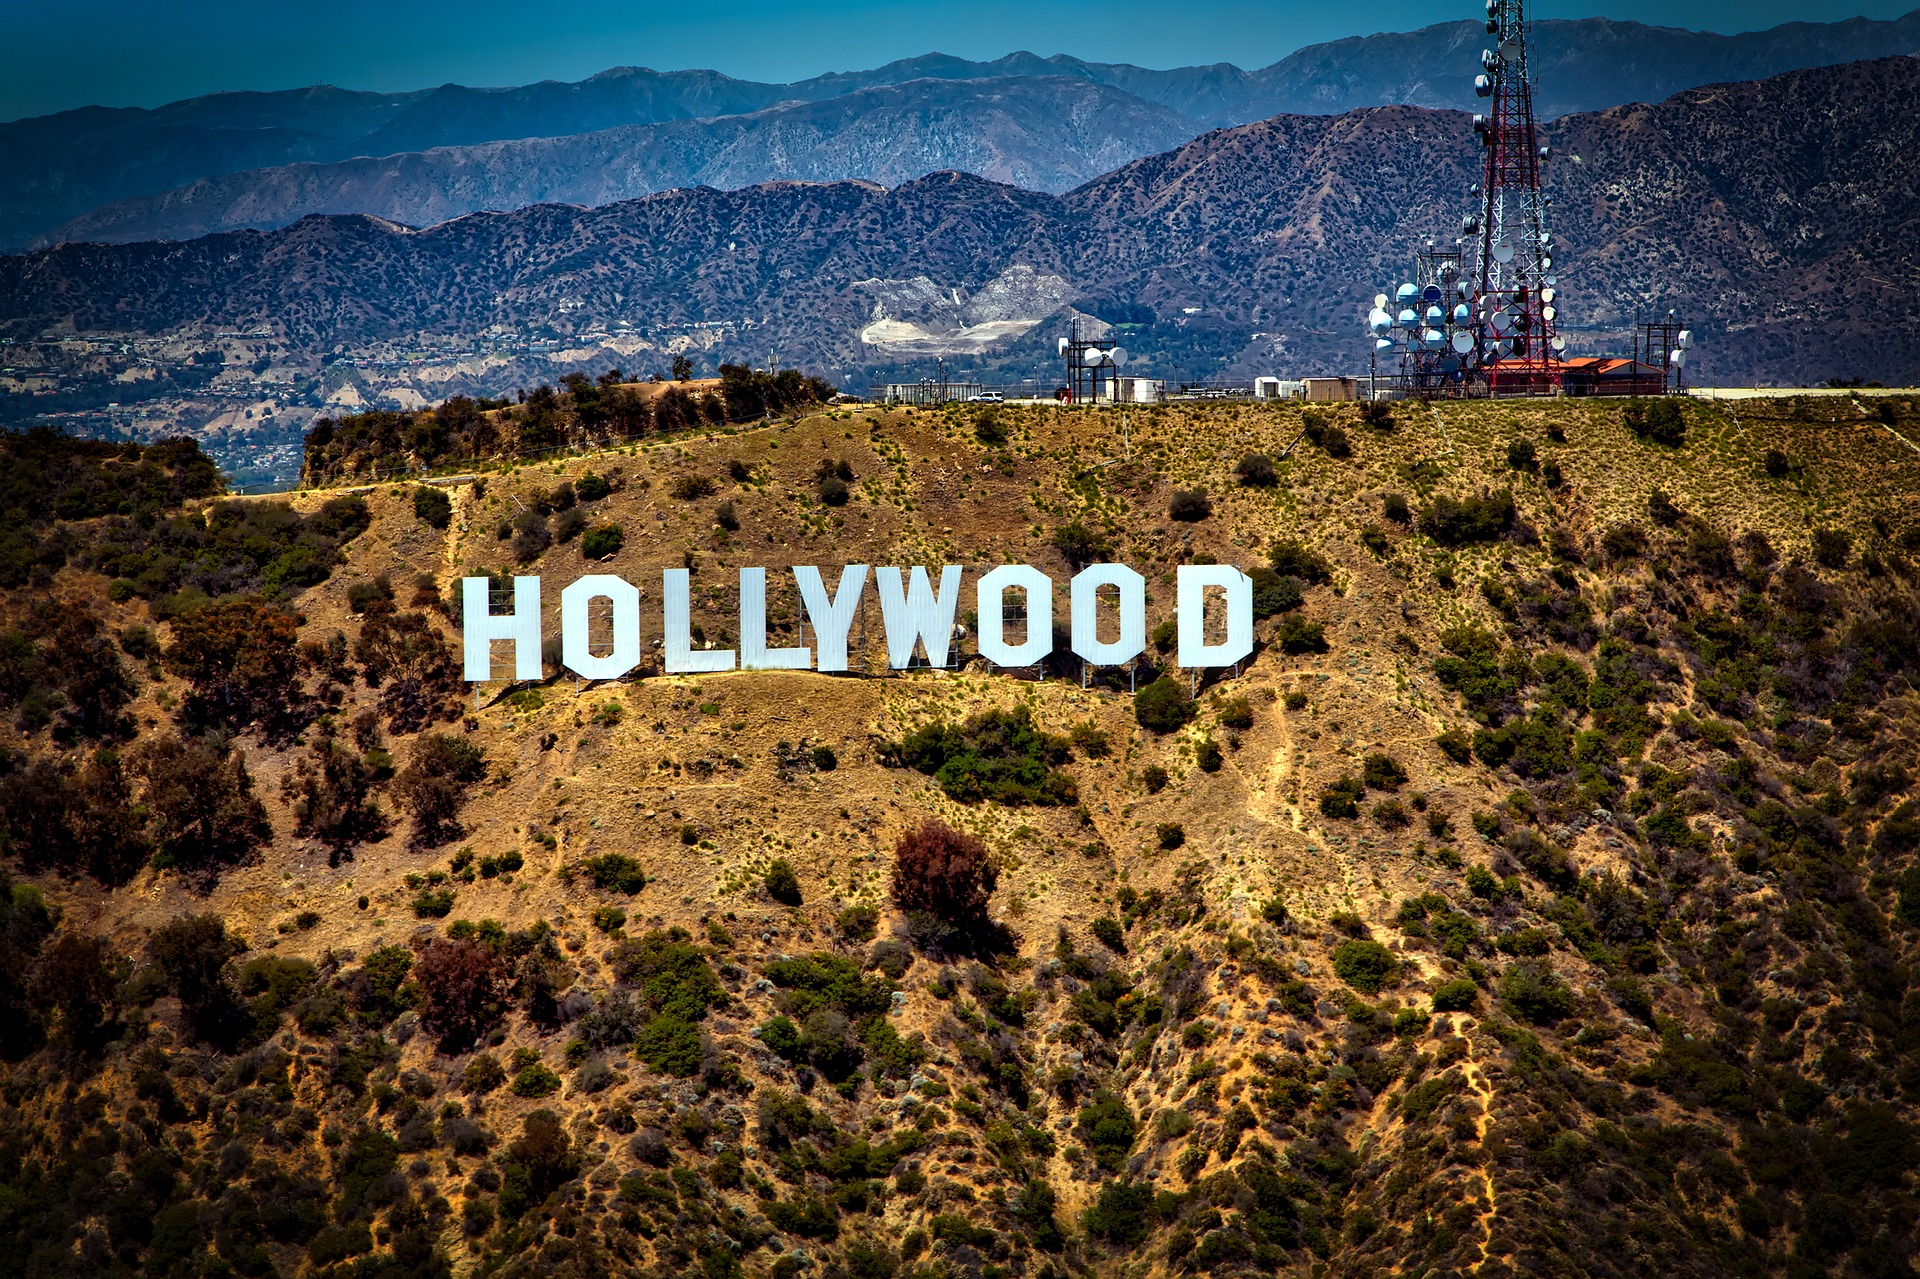 Living close to Hollywood sounds nice